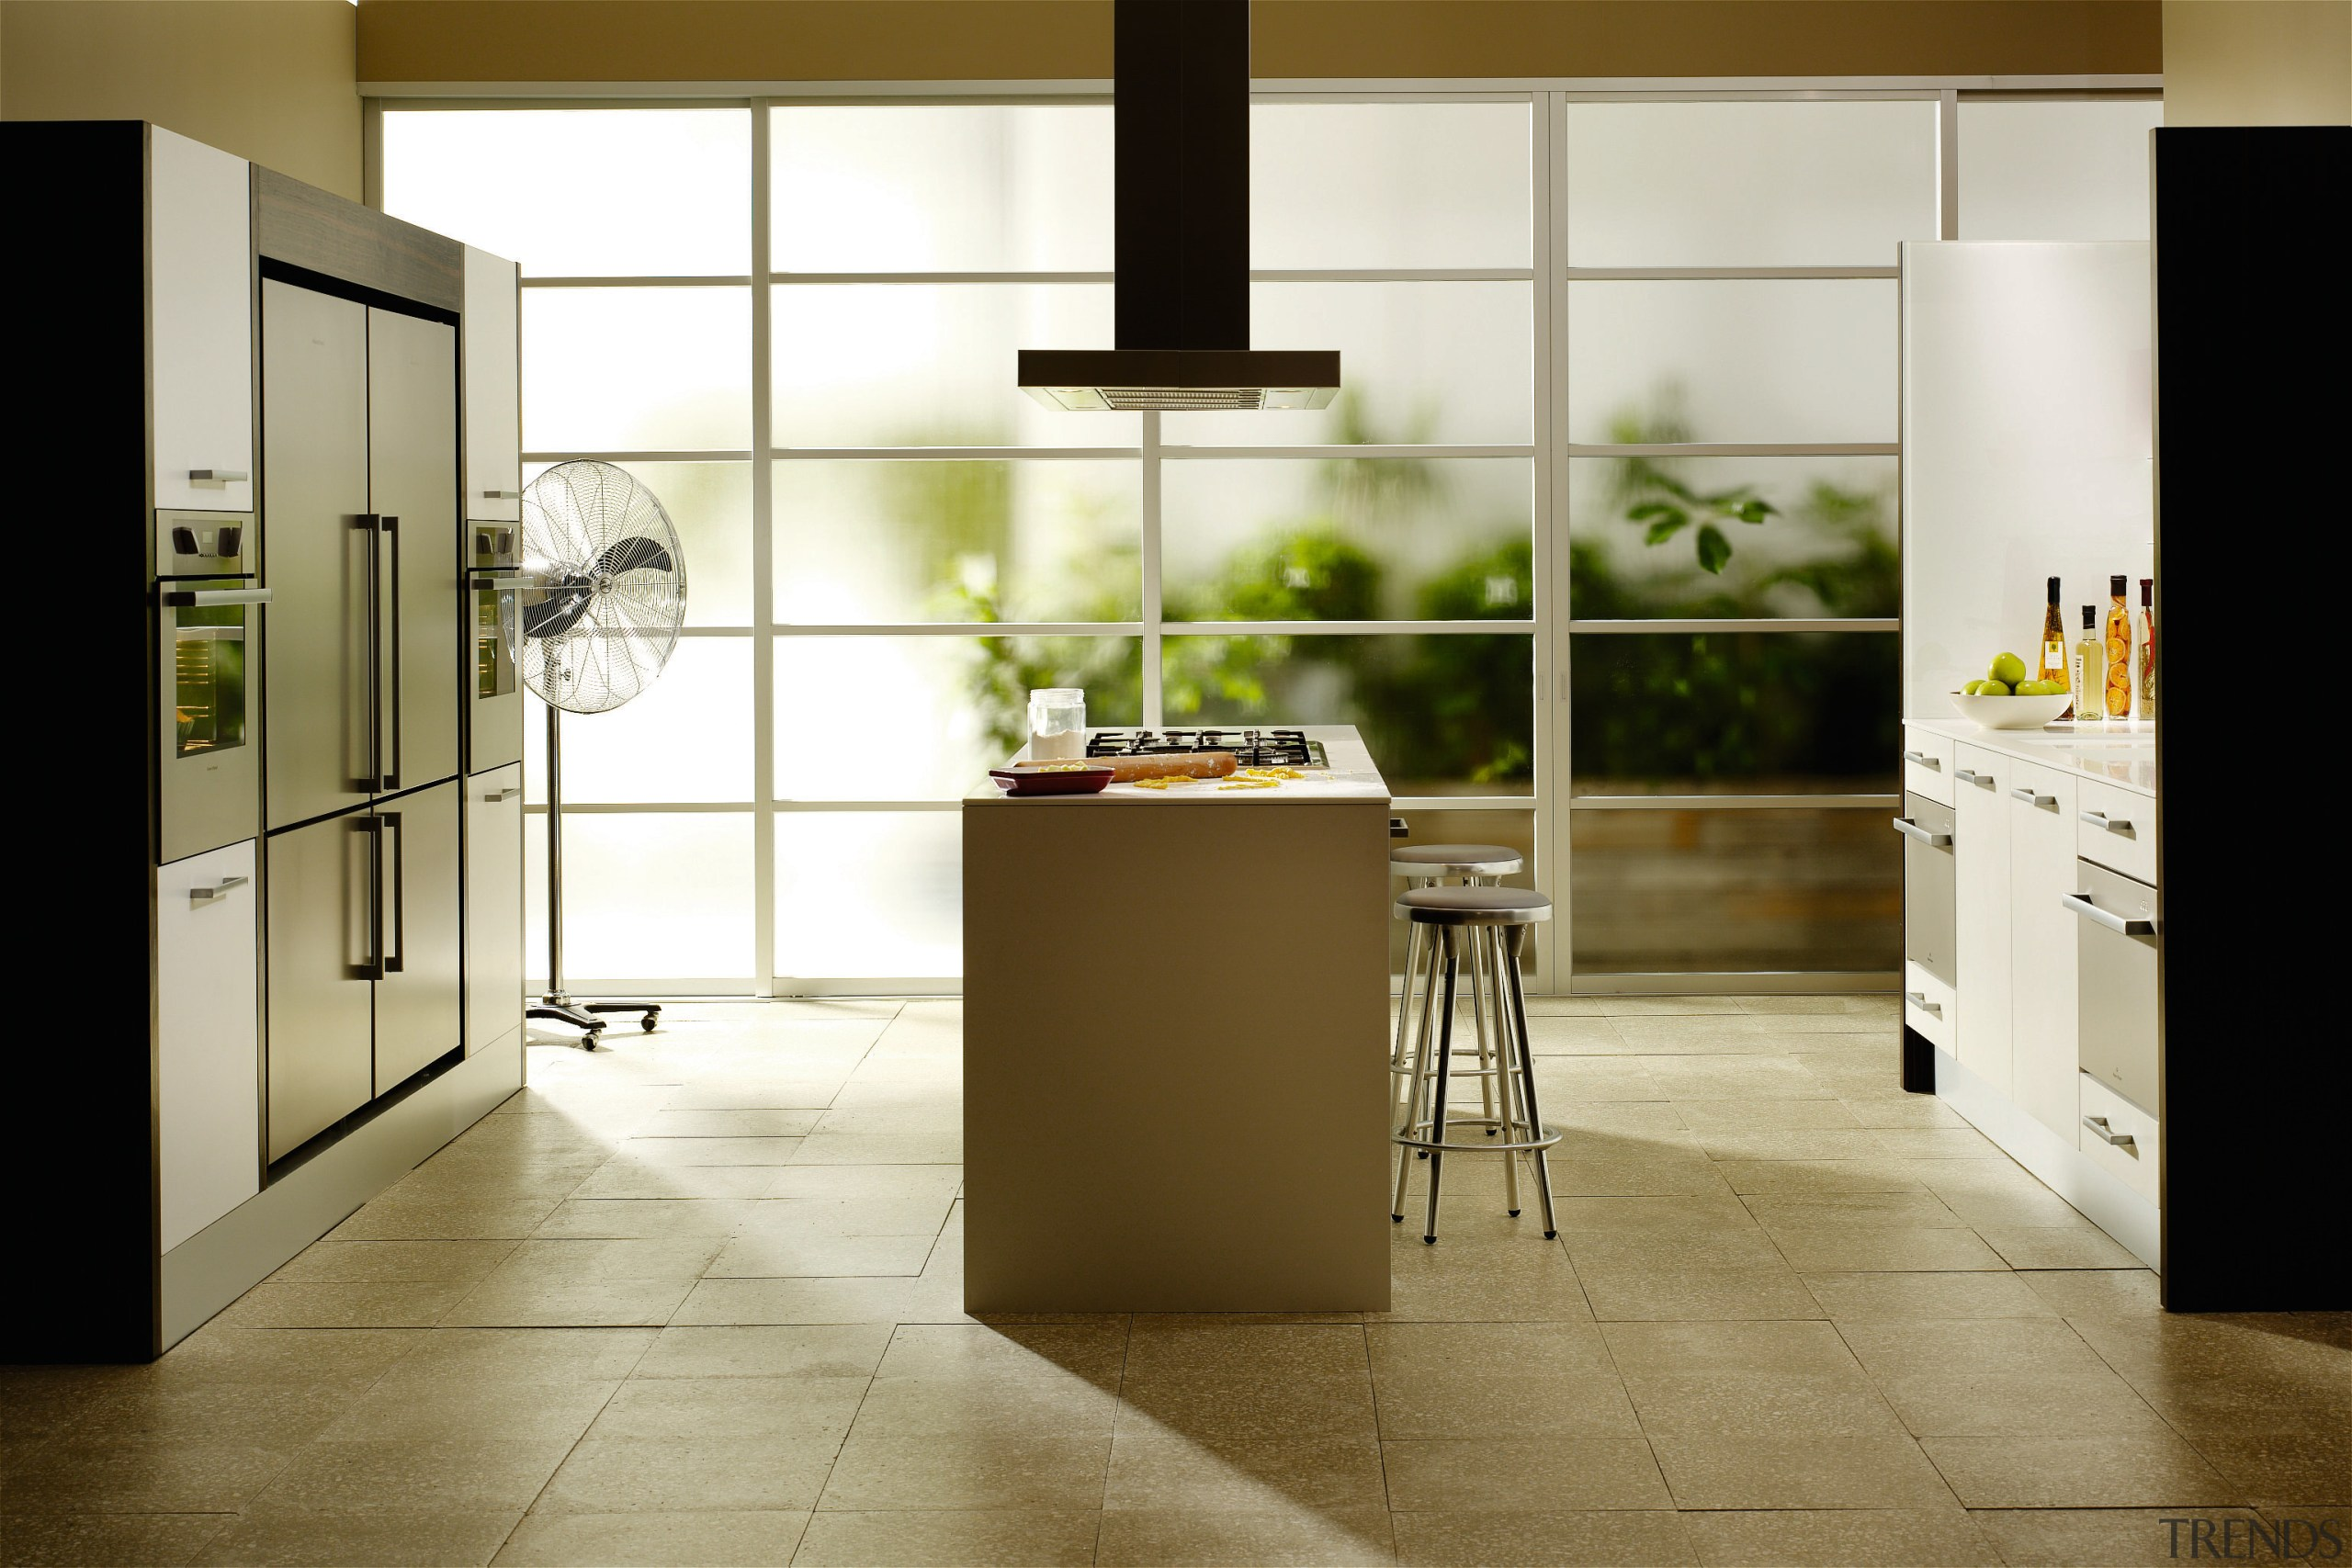 Examples of the new Fisher & Paykel technology cabinetry, countertop, cuisine classique, floor, flooring, home appliance, interior design, kitchen, laminate flooring, room, tile, wood flooring, brown, white